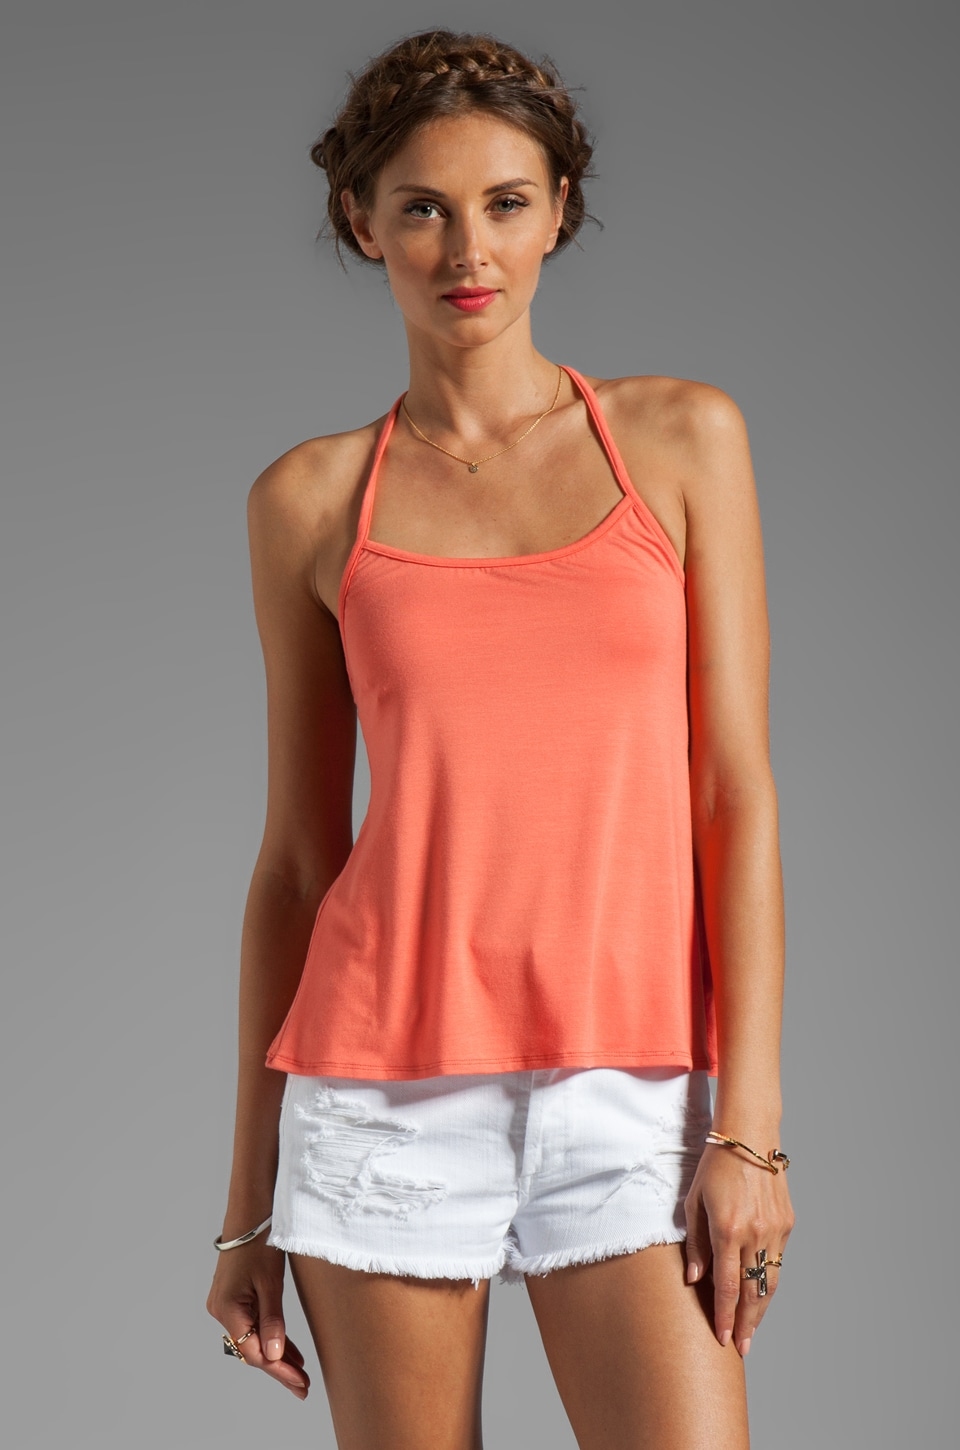 Rachel Pally Cheyenne Top in Apricot